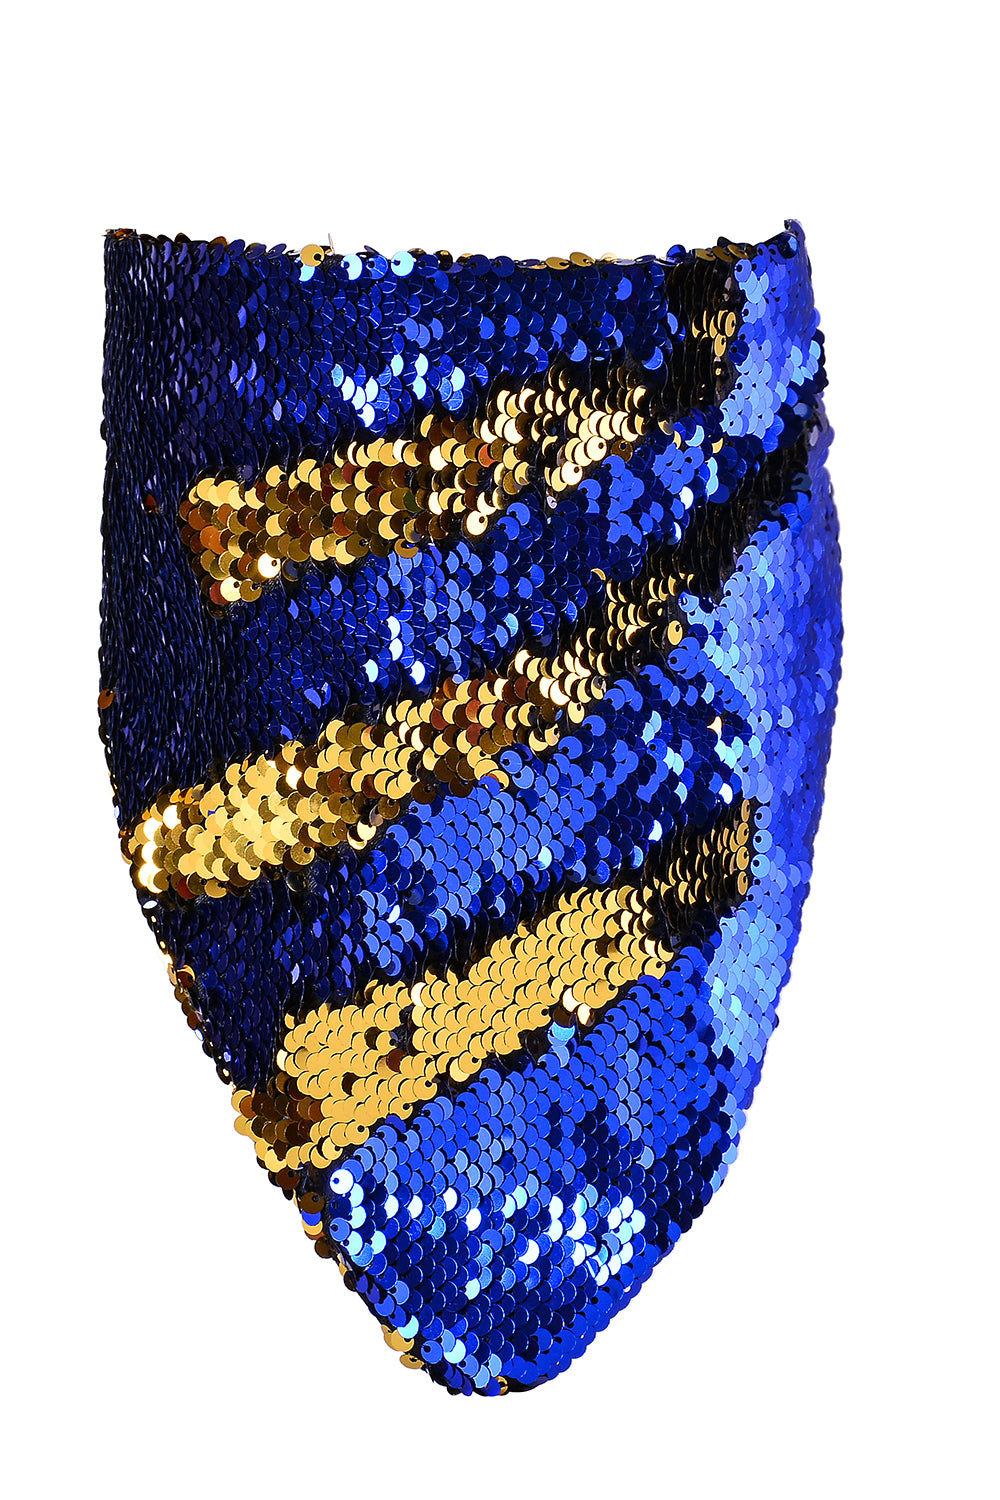 Reversible Sequin Bandana & Face Mask - Royal Blue & Gold